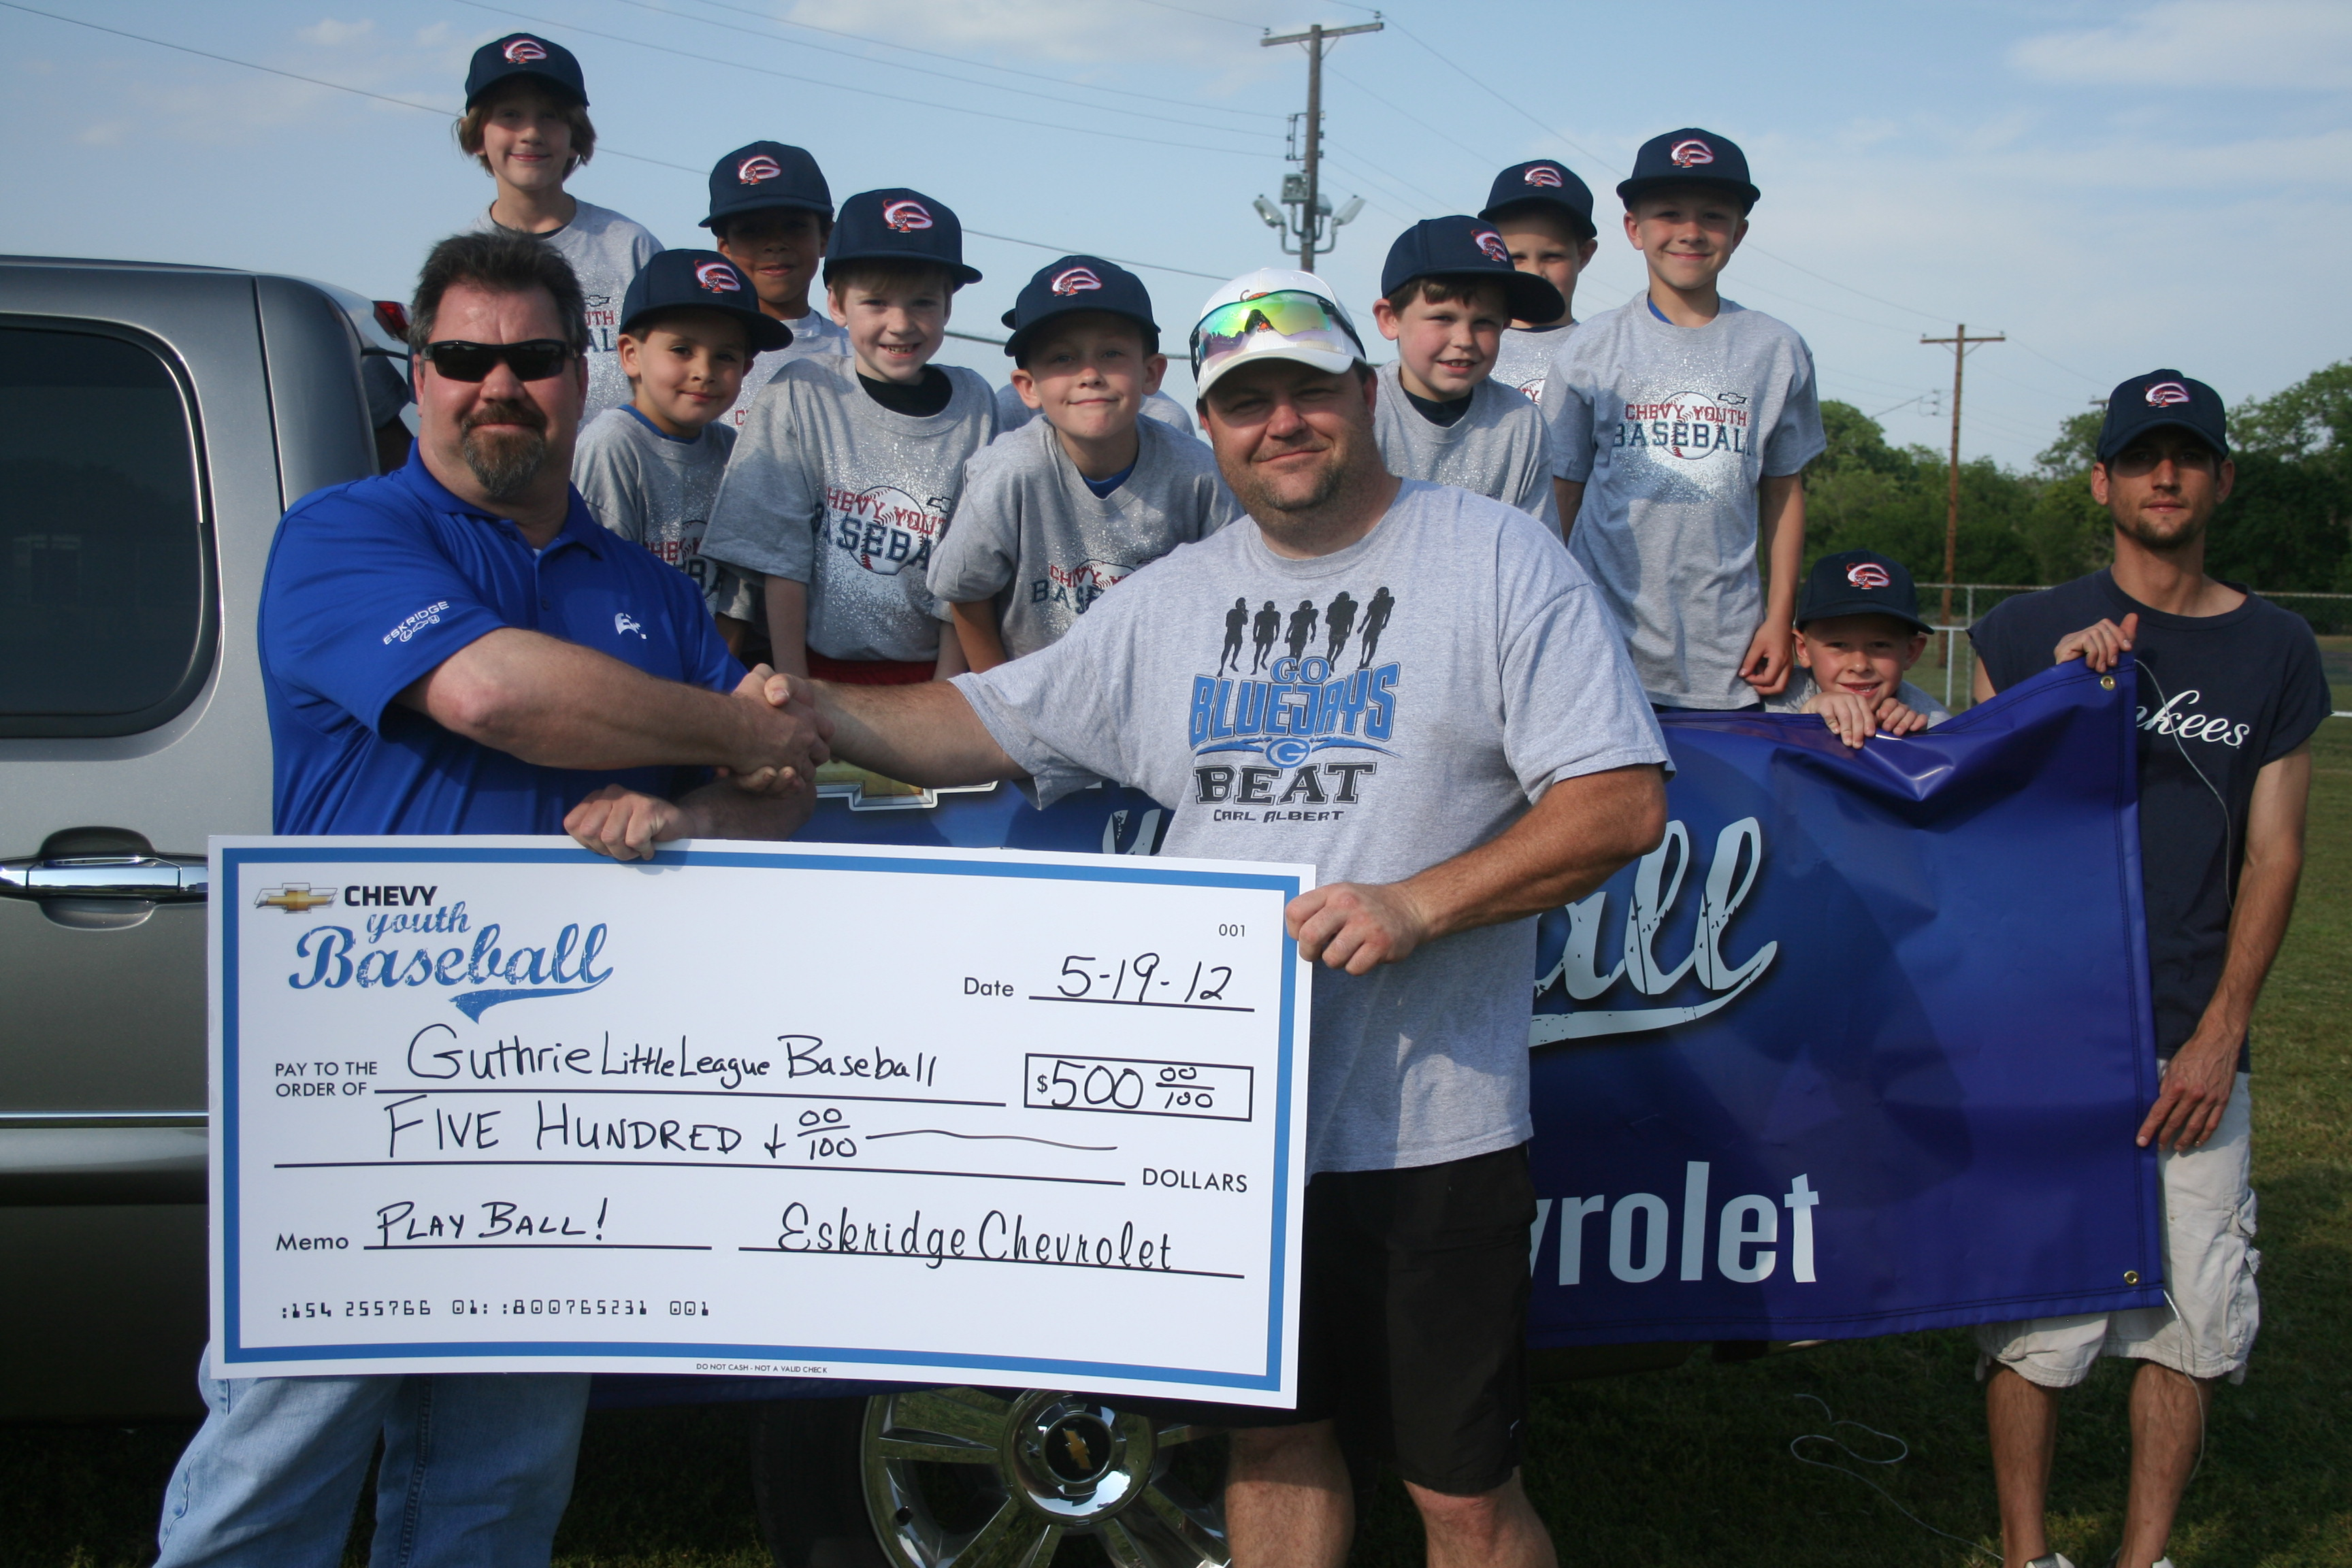 local dealership continues sponsorship with baseball guthrie news page guthrie news page wordpress com